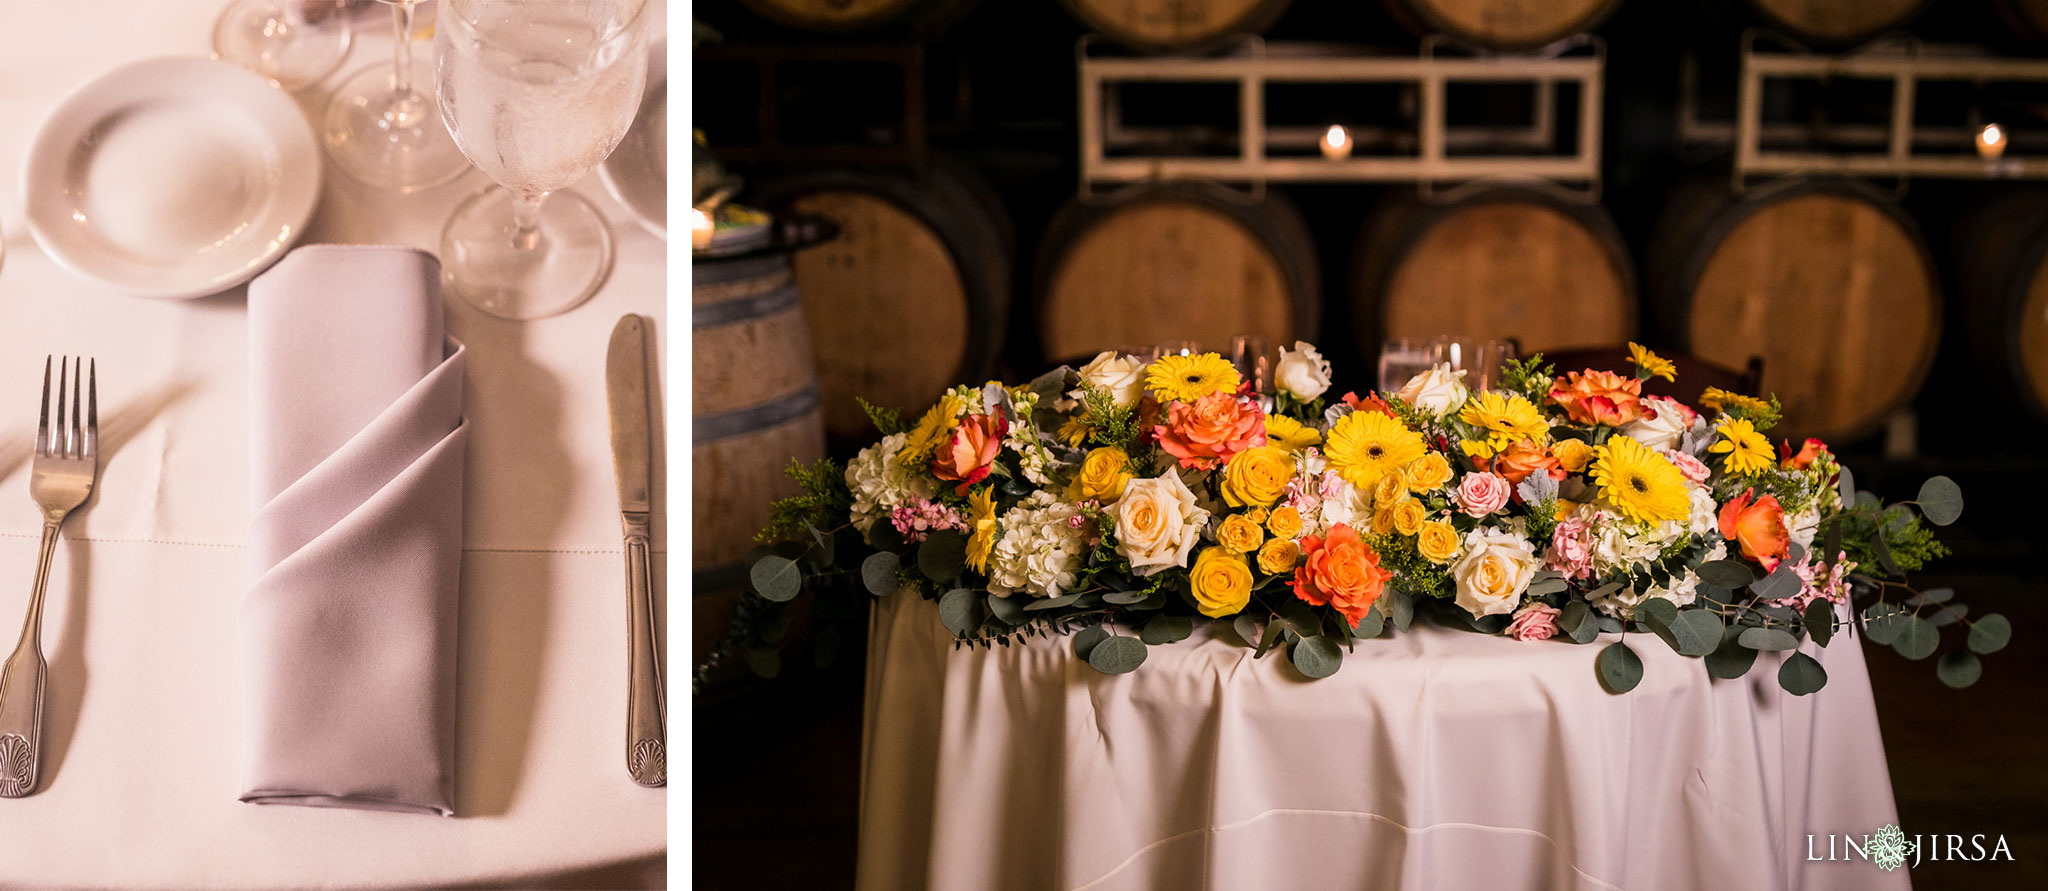 30 leoness cellars temecula wedding reception photography